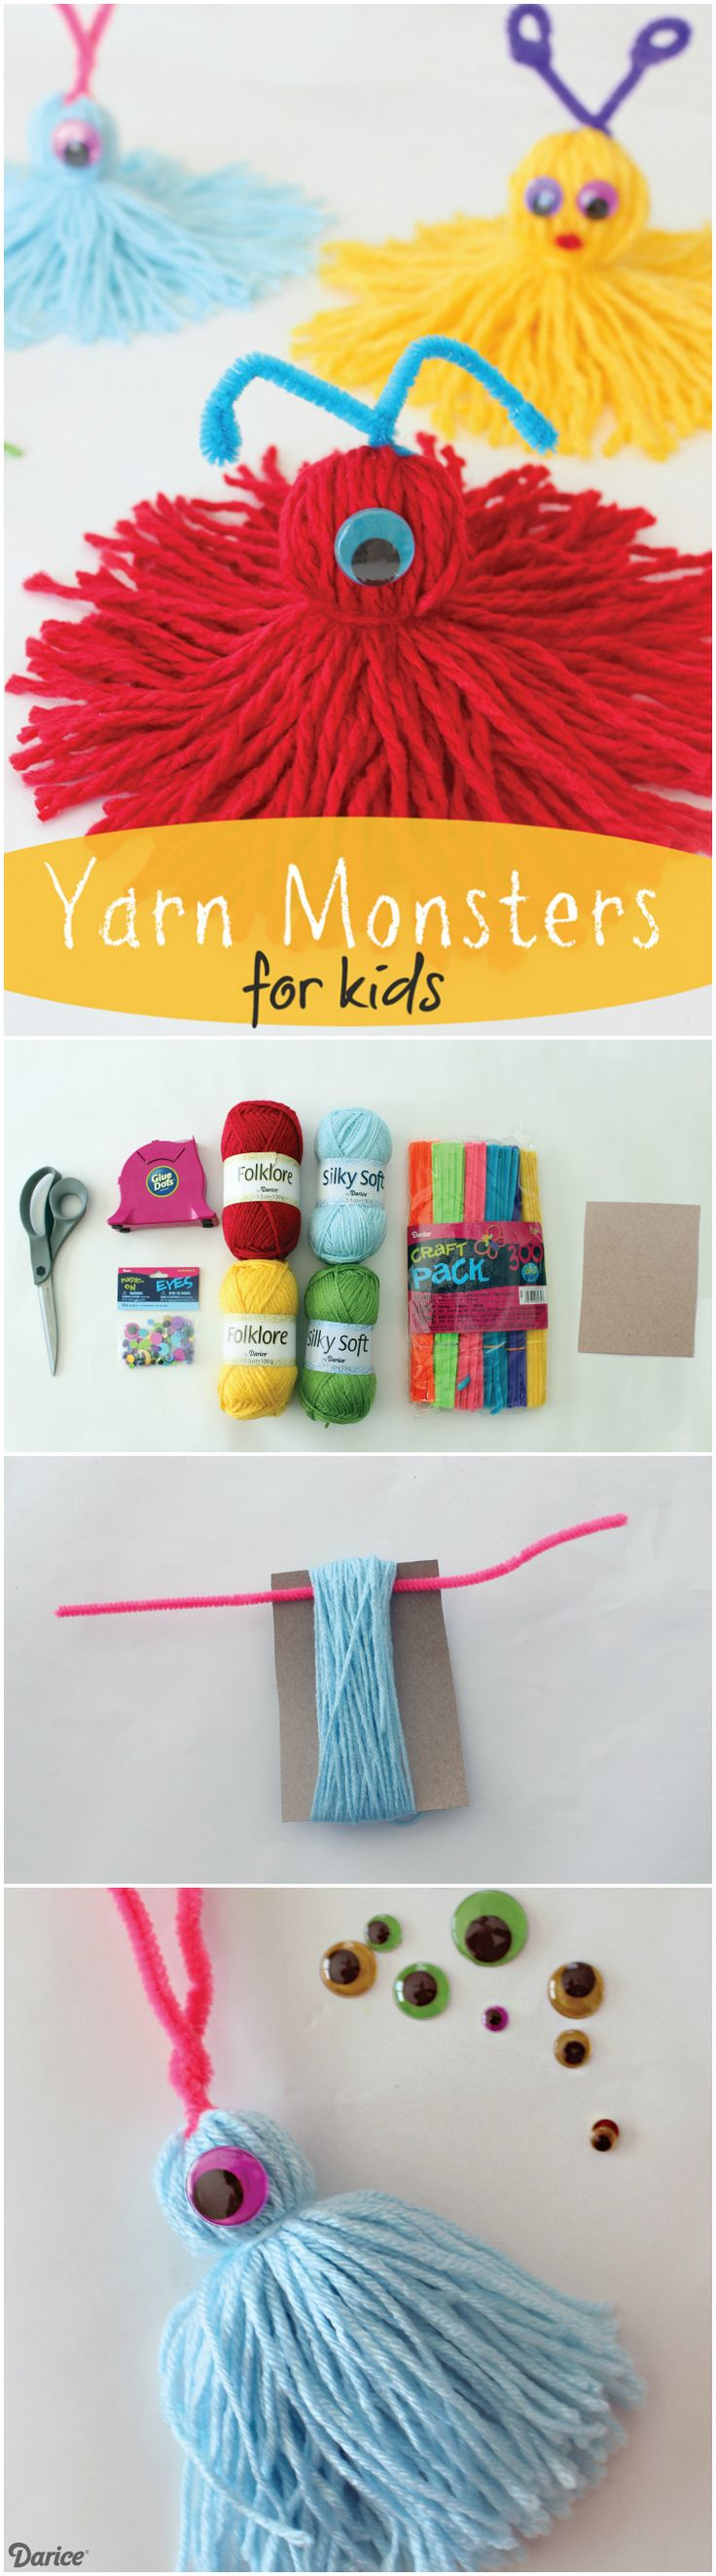 Looking for a fun craft that kids are sure to love? Try these DIY yarn monsters that are sure to be a hit. They're fuzzy and soft and not creepy at all!